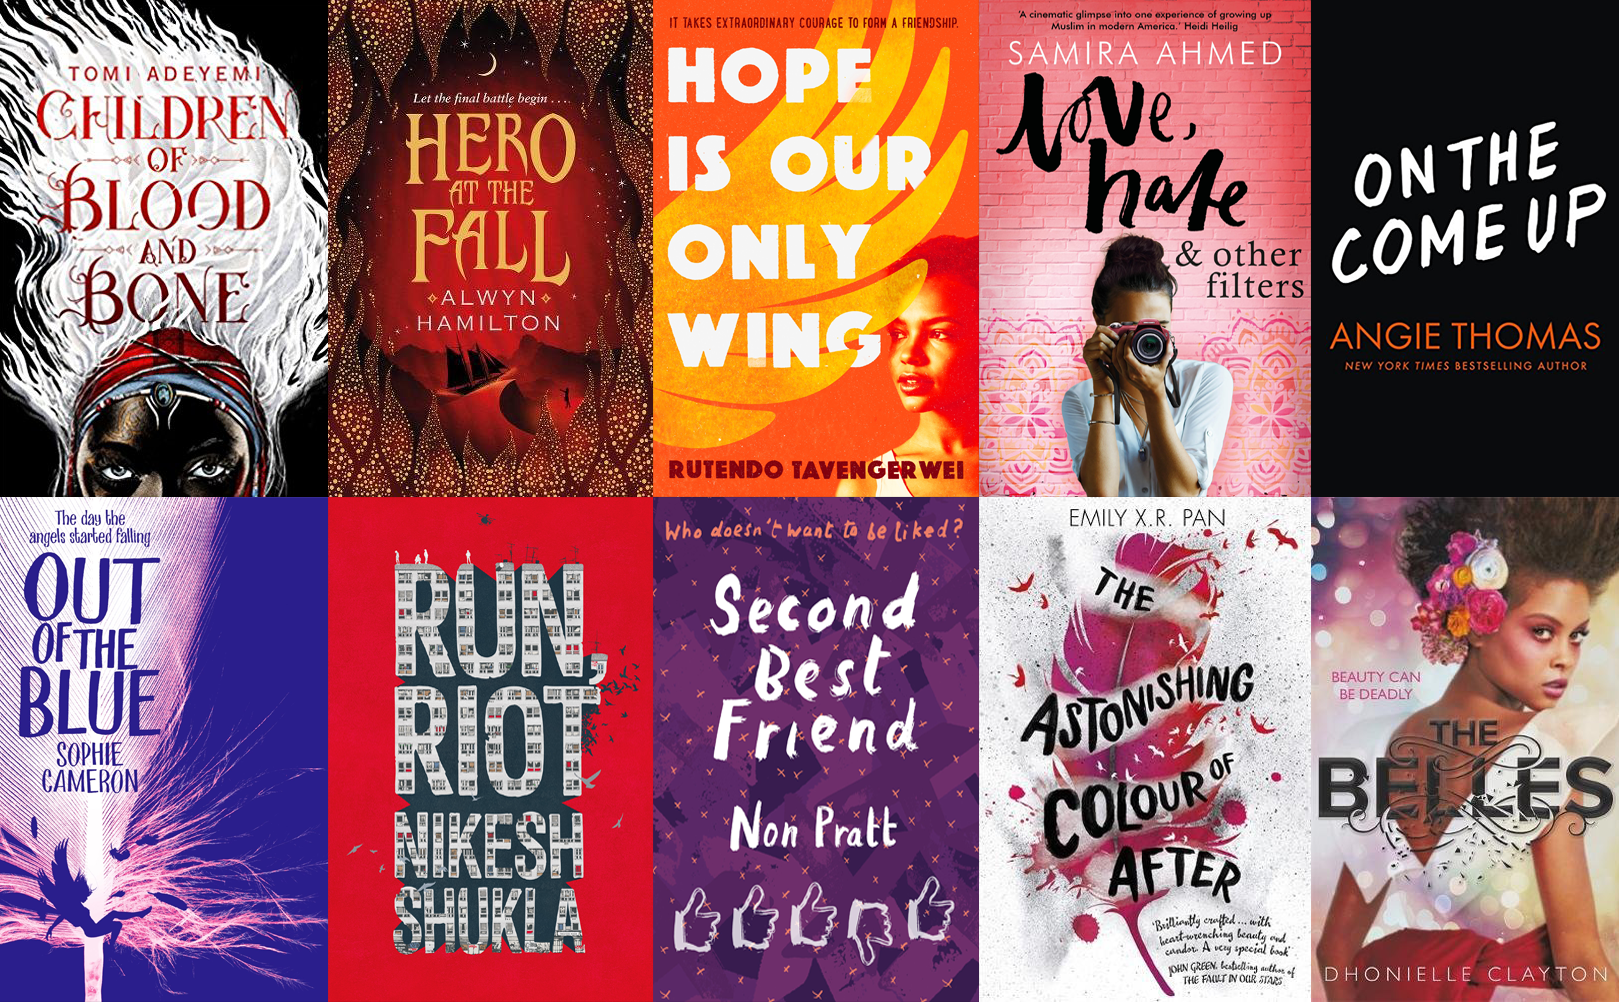 10 YA BOOKS TO LOOK OUT FOR IN 2018! - #BooksMadeBetter